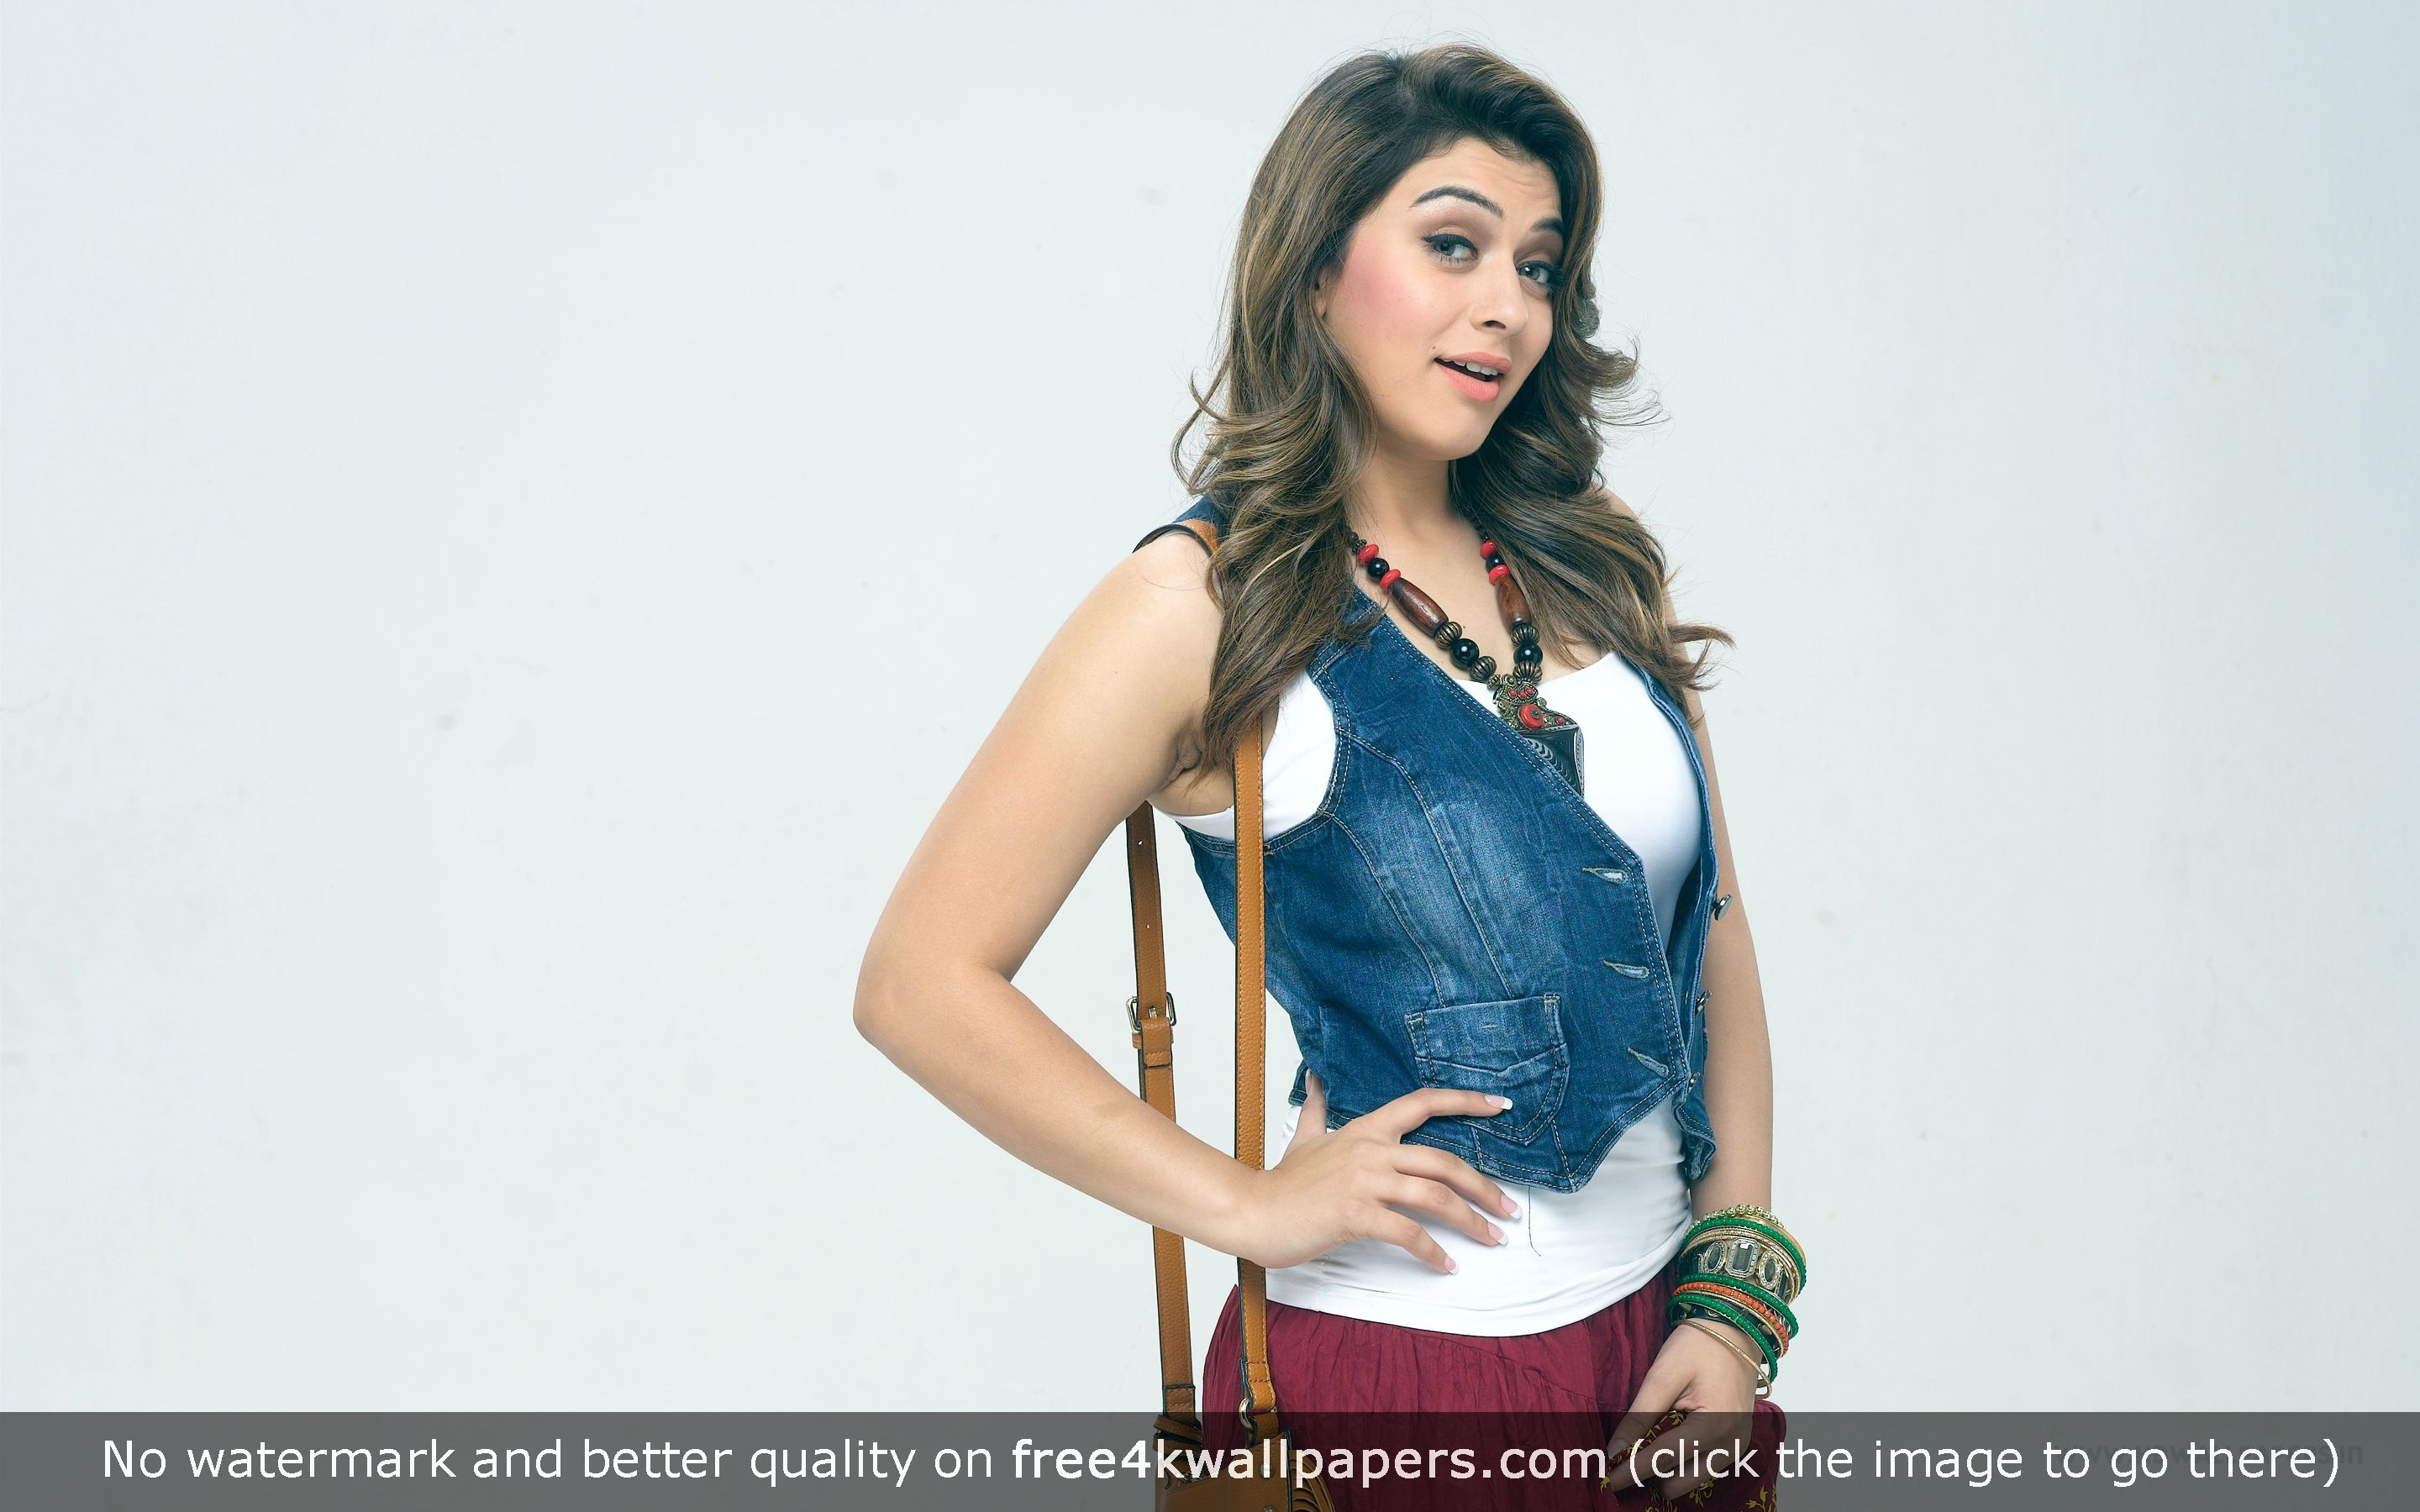 Hansika motwani in tamil movie 4k or hd wallpaper for your - Actress wallpaper download for mobile ...